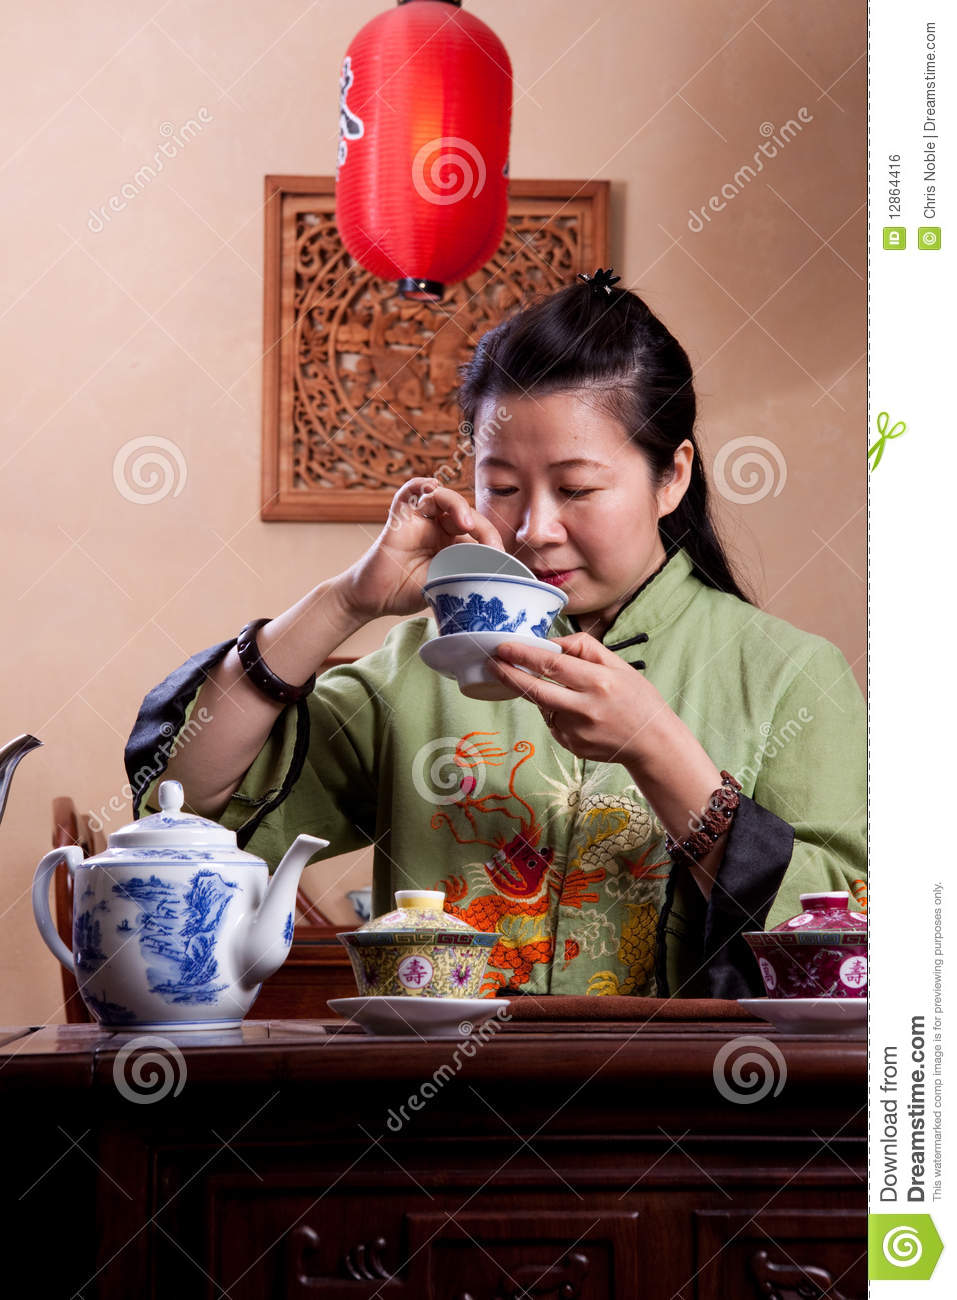 Think, that asian lady image on china teacup and shame!